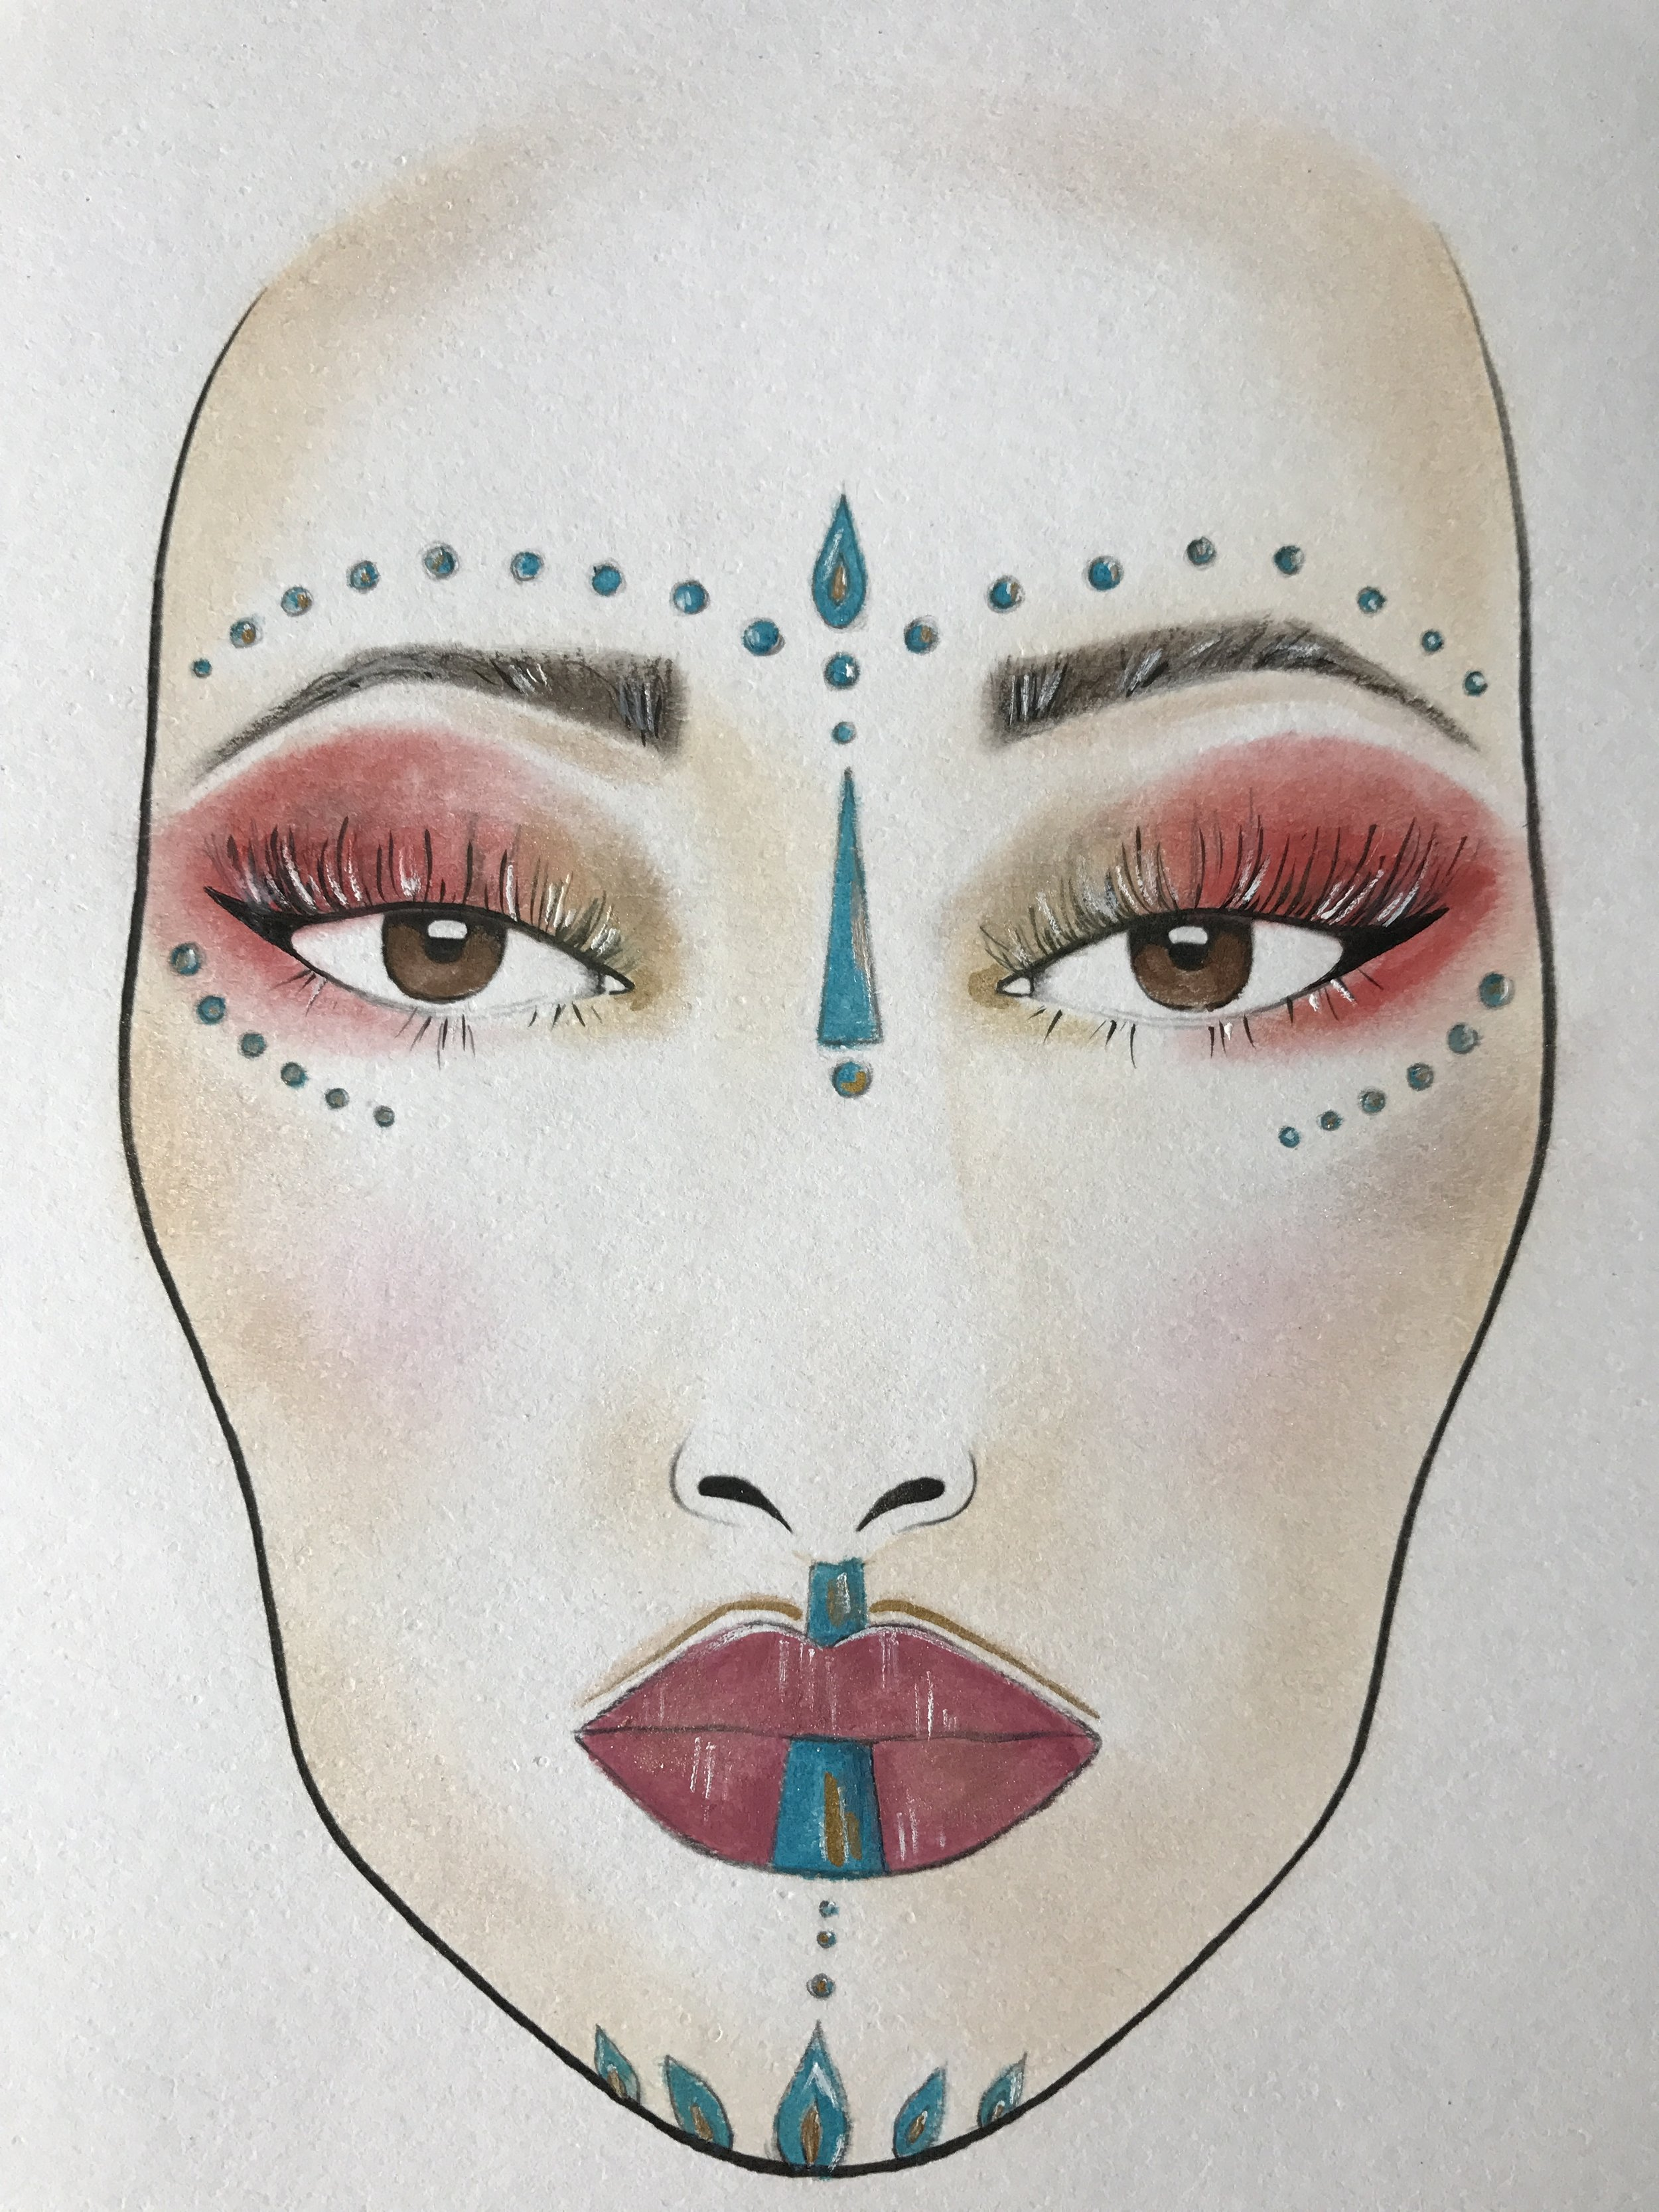 This was my Original face chart that I designed for the trial with Mumta, after discussing with her what her vision was. We tweaked it slightly for the actual day but it was a good place to start and such a lovely brief.